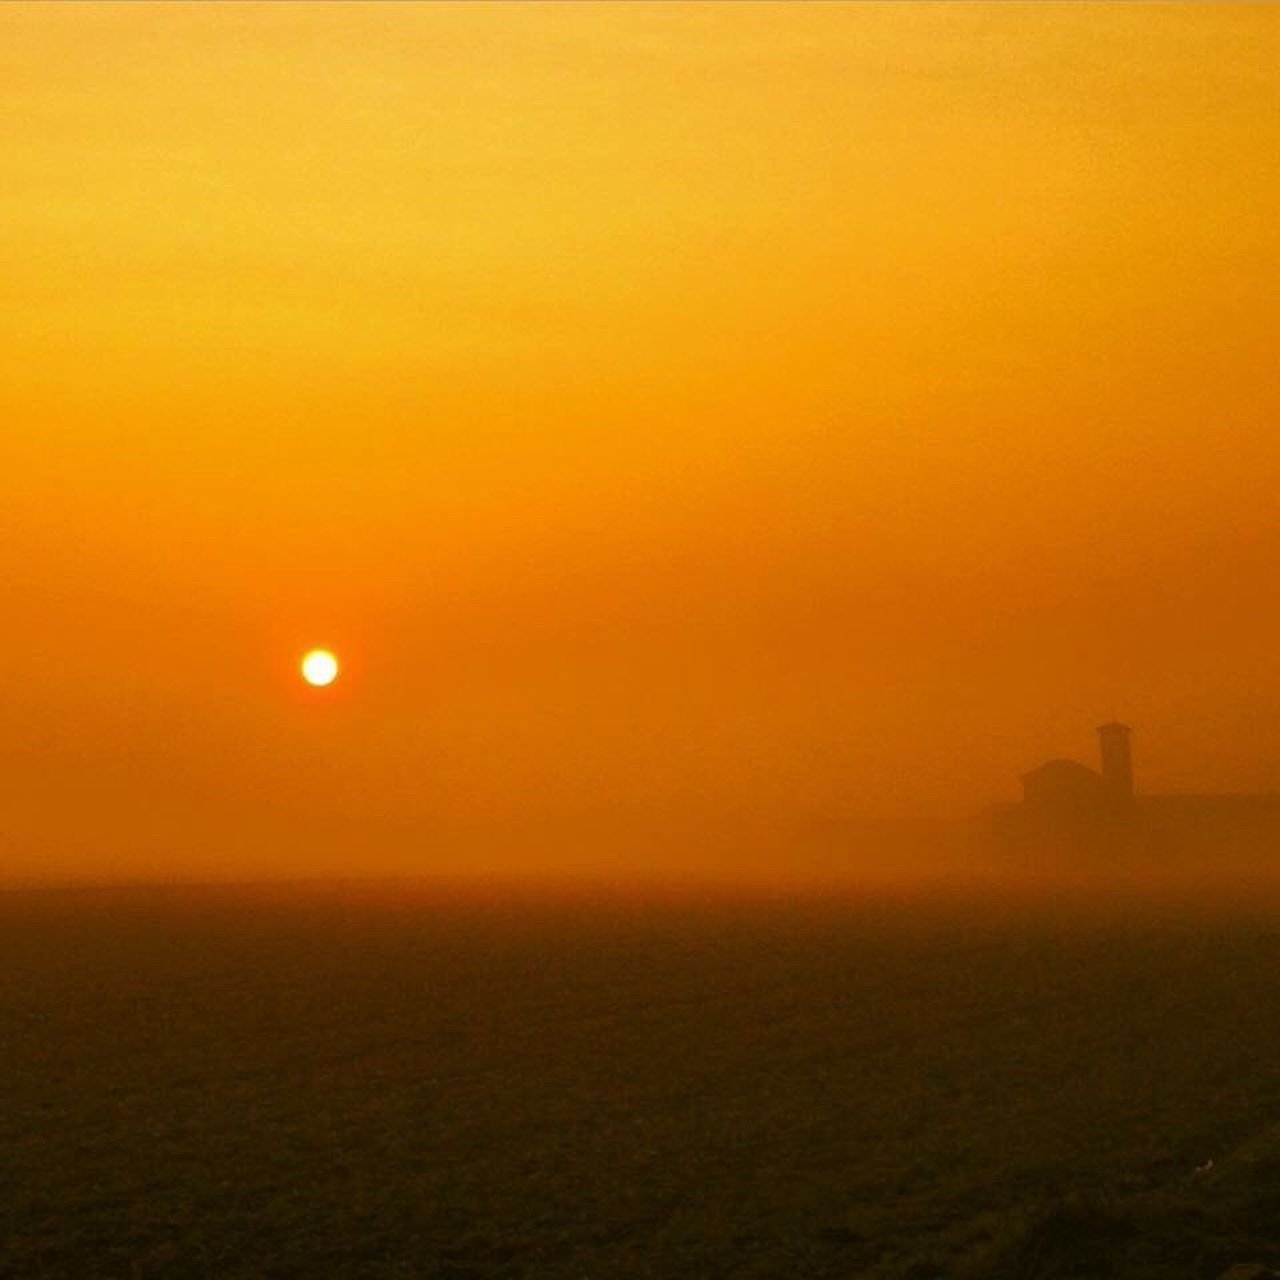 sunset, sun, outdoors, fog, scenics, nature, silhouette, no people, tranquility, beauty in nature, sky, day